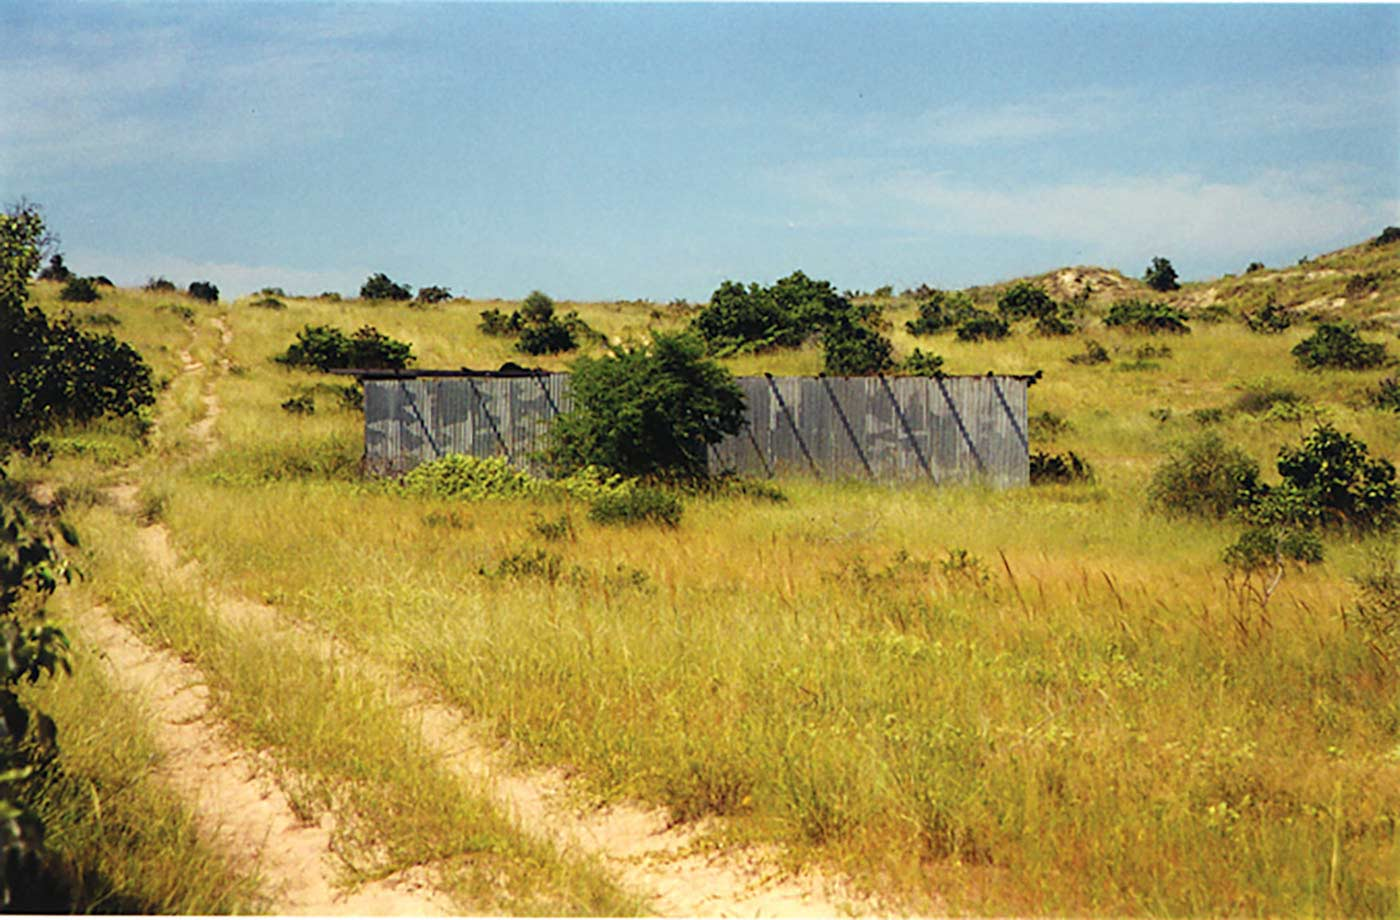 A colour photograph of an abandoned building surrounded by grass-covered sand dunes. The building is in the middle of the photograph. It has a flat roof and is partially obscured by some trees. In the left foreground is a vehicle track marked by parallel sandy lines. Scattered trees are on the dunes. The sky in the distance is light blue and has some very pale and wispy clouds in it. - click to view larger image